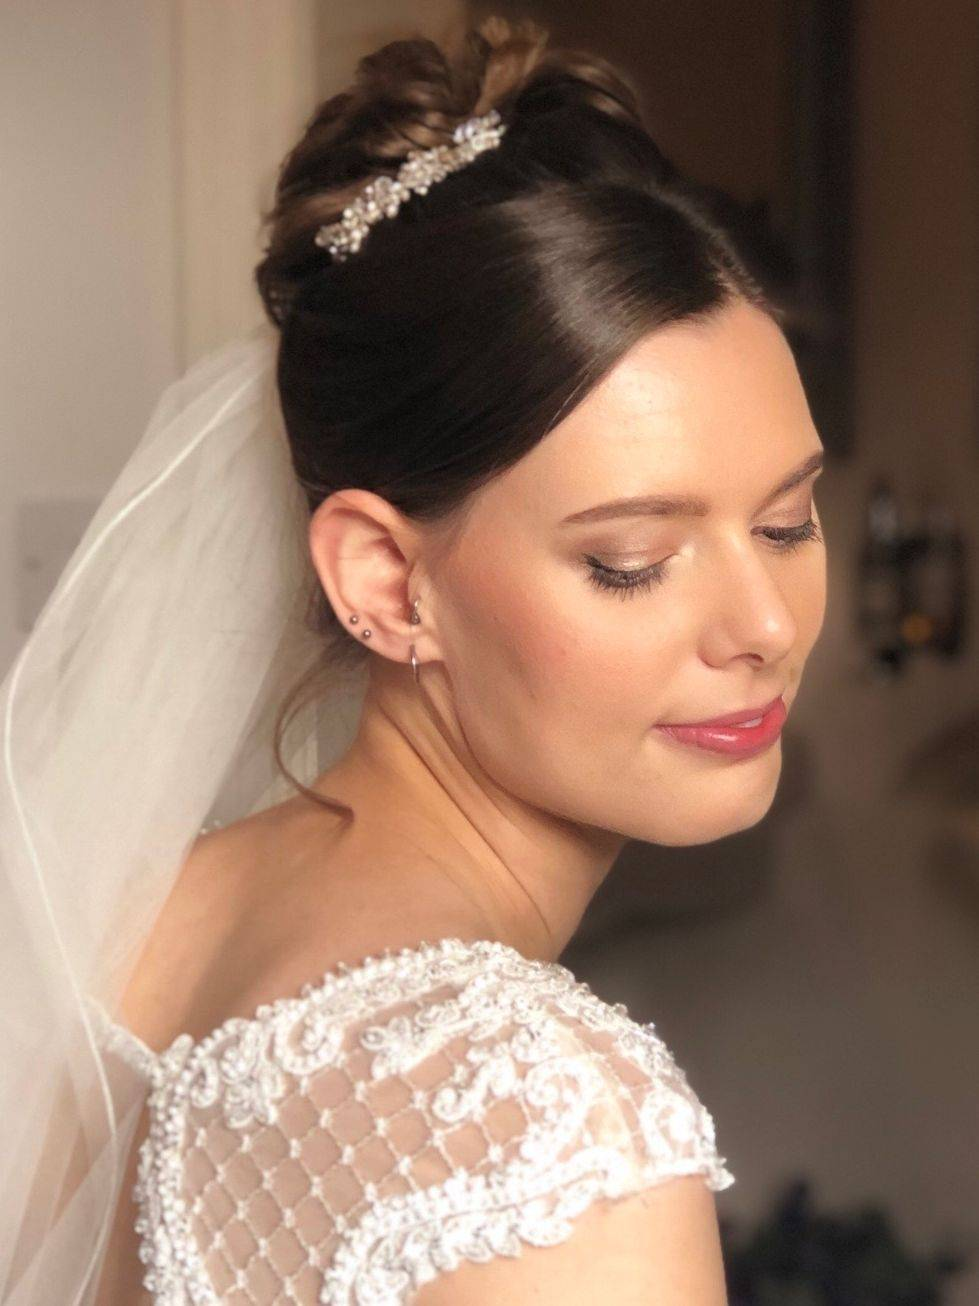 Bridal makeup, wedding makeup, norfolk, suffolk, norwich, great yarmouth